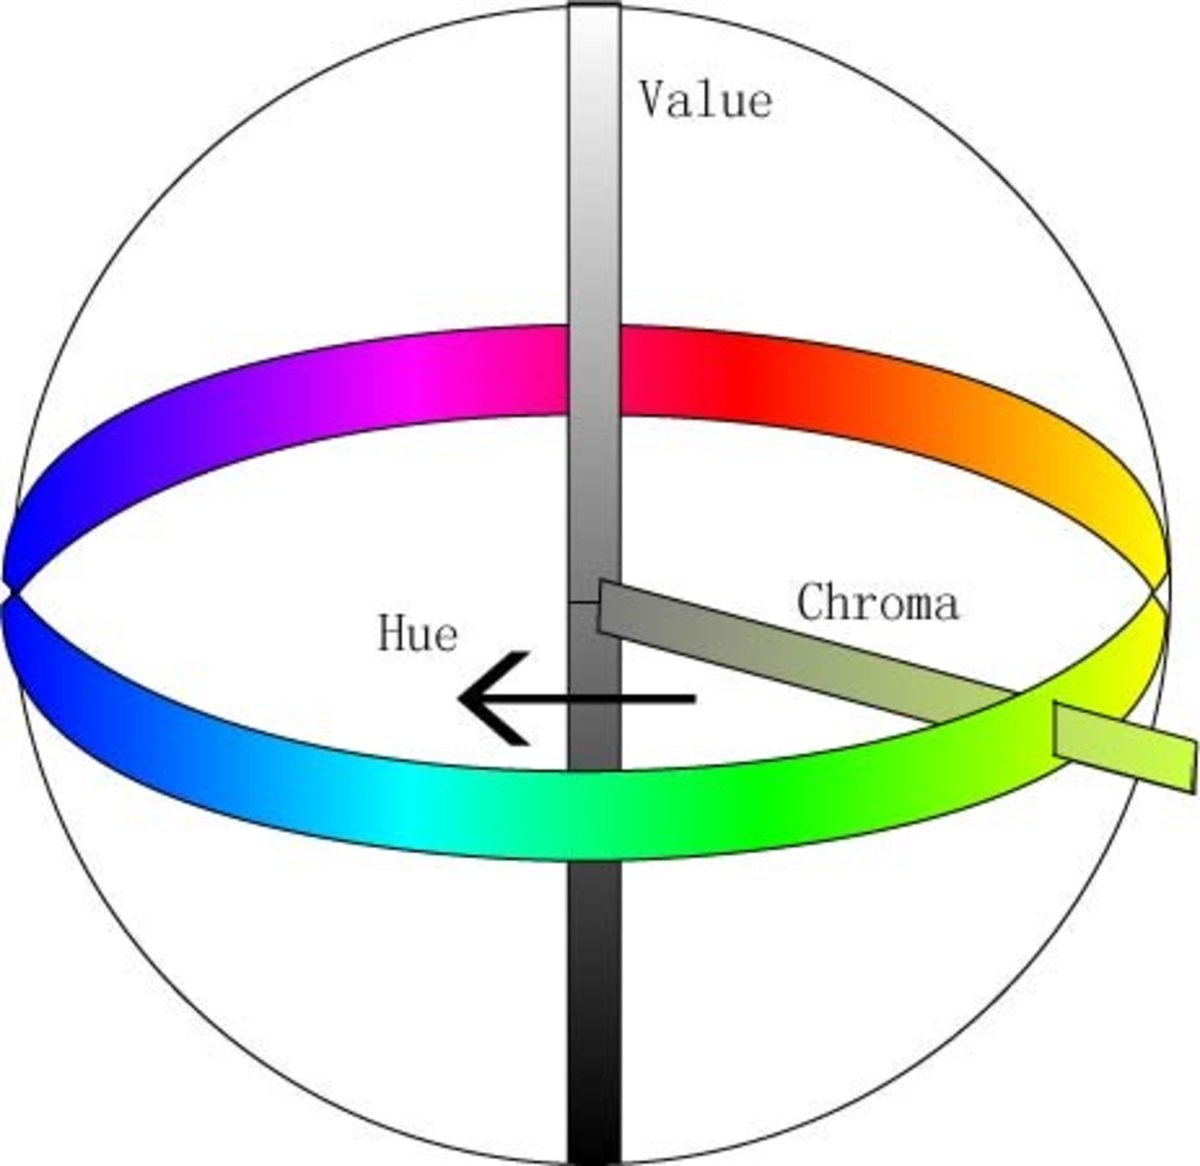 The Three Dimensions of a Color According to the Munsell System